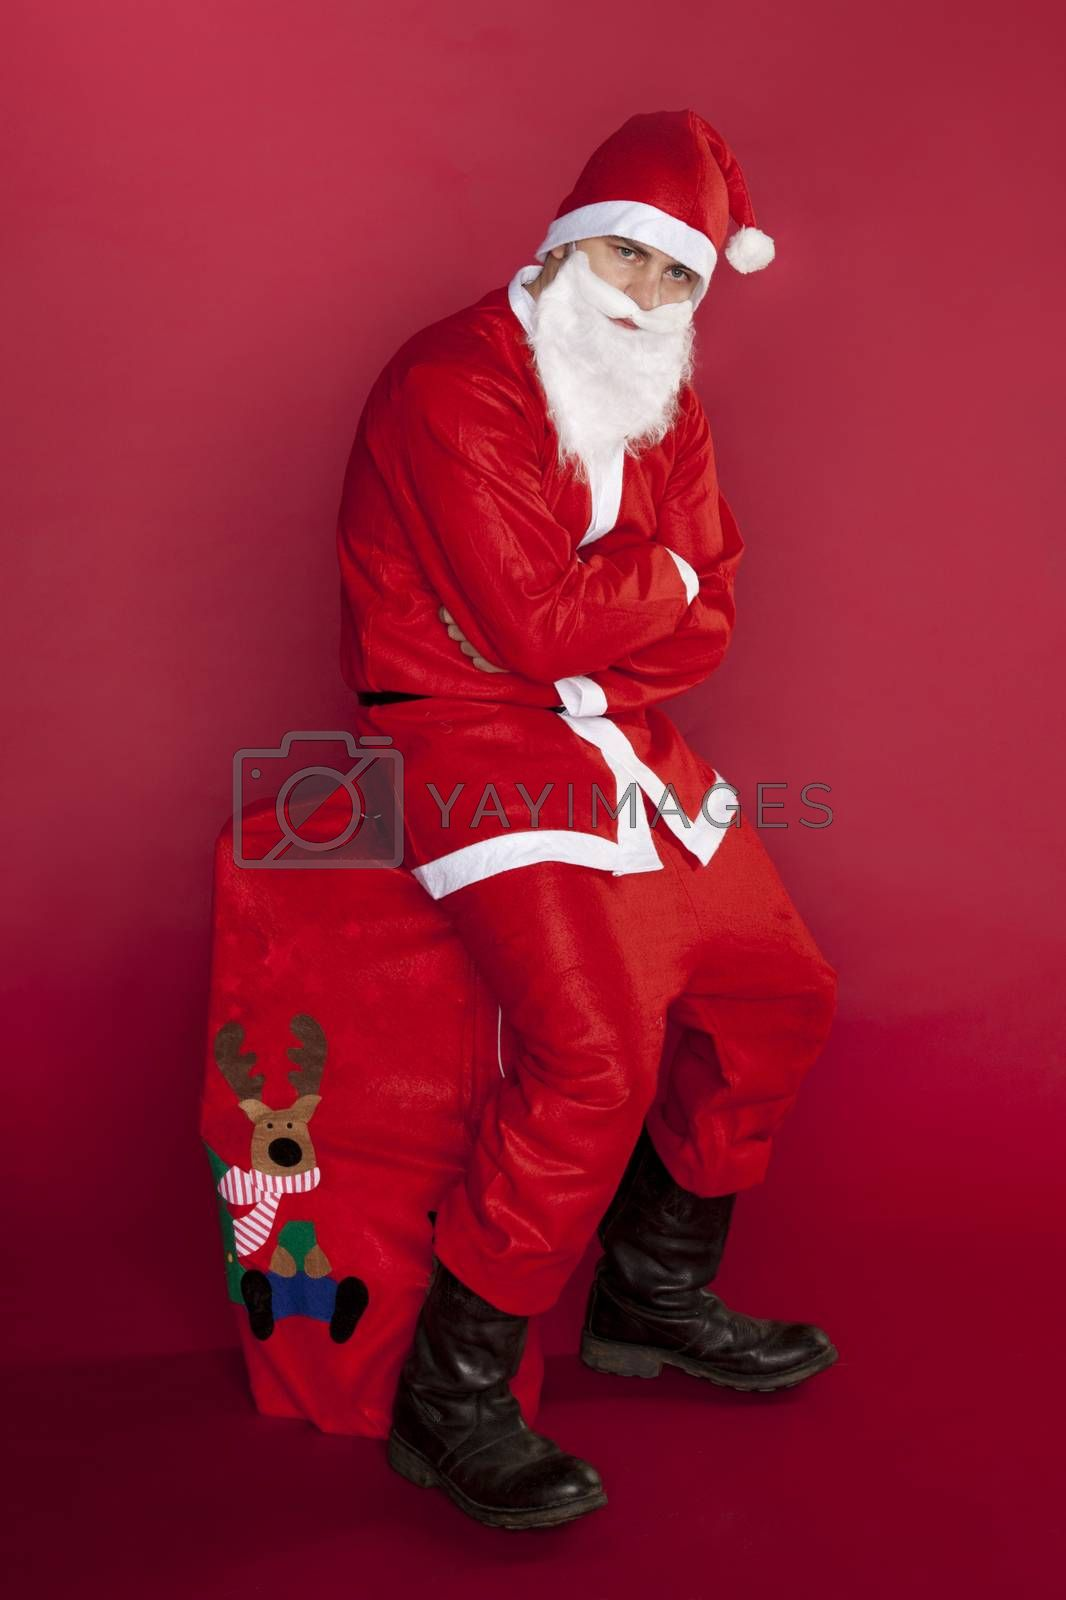 Unhappy Santa Claus is sitting on a big bag stuffed with presents